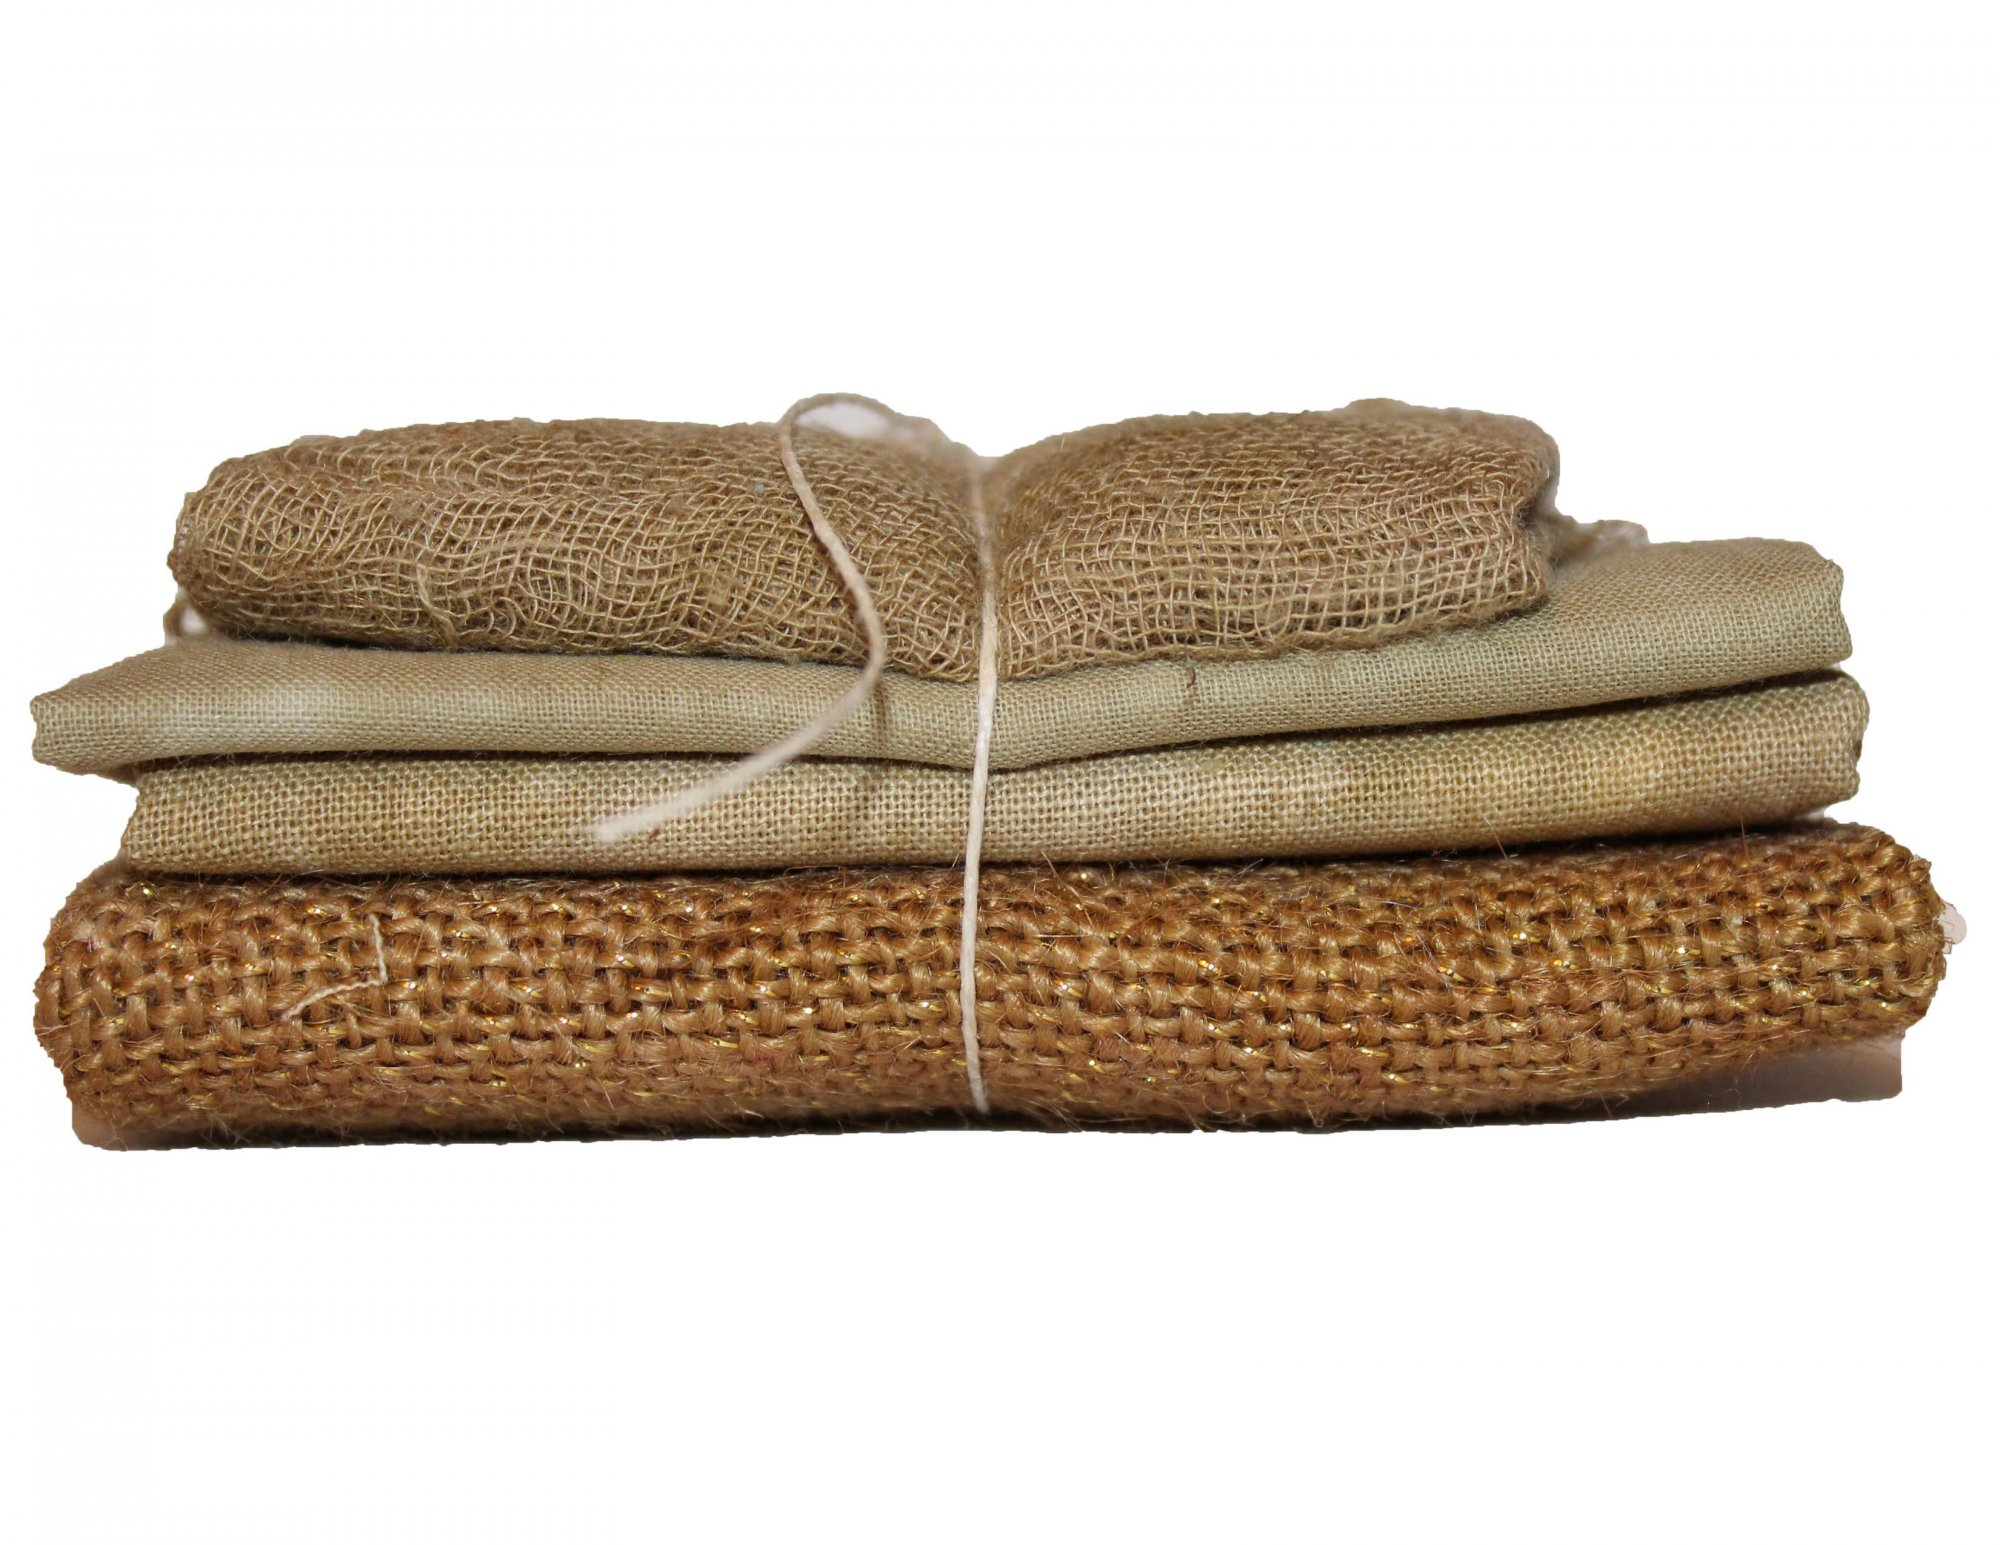 Dulce de Leche Sparkle Bindle - Cheesecloth, Organdy, Linen, & Sparkle Burlap